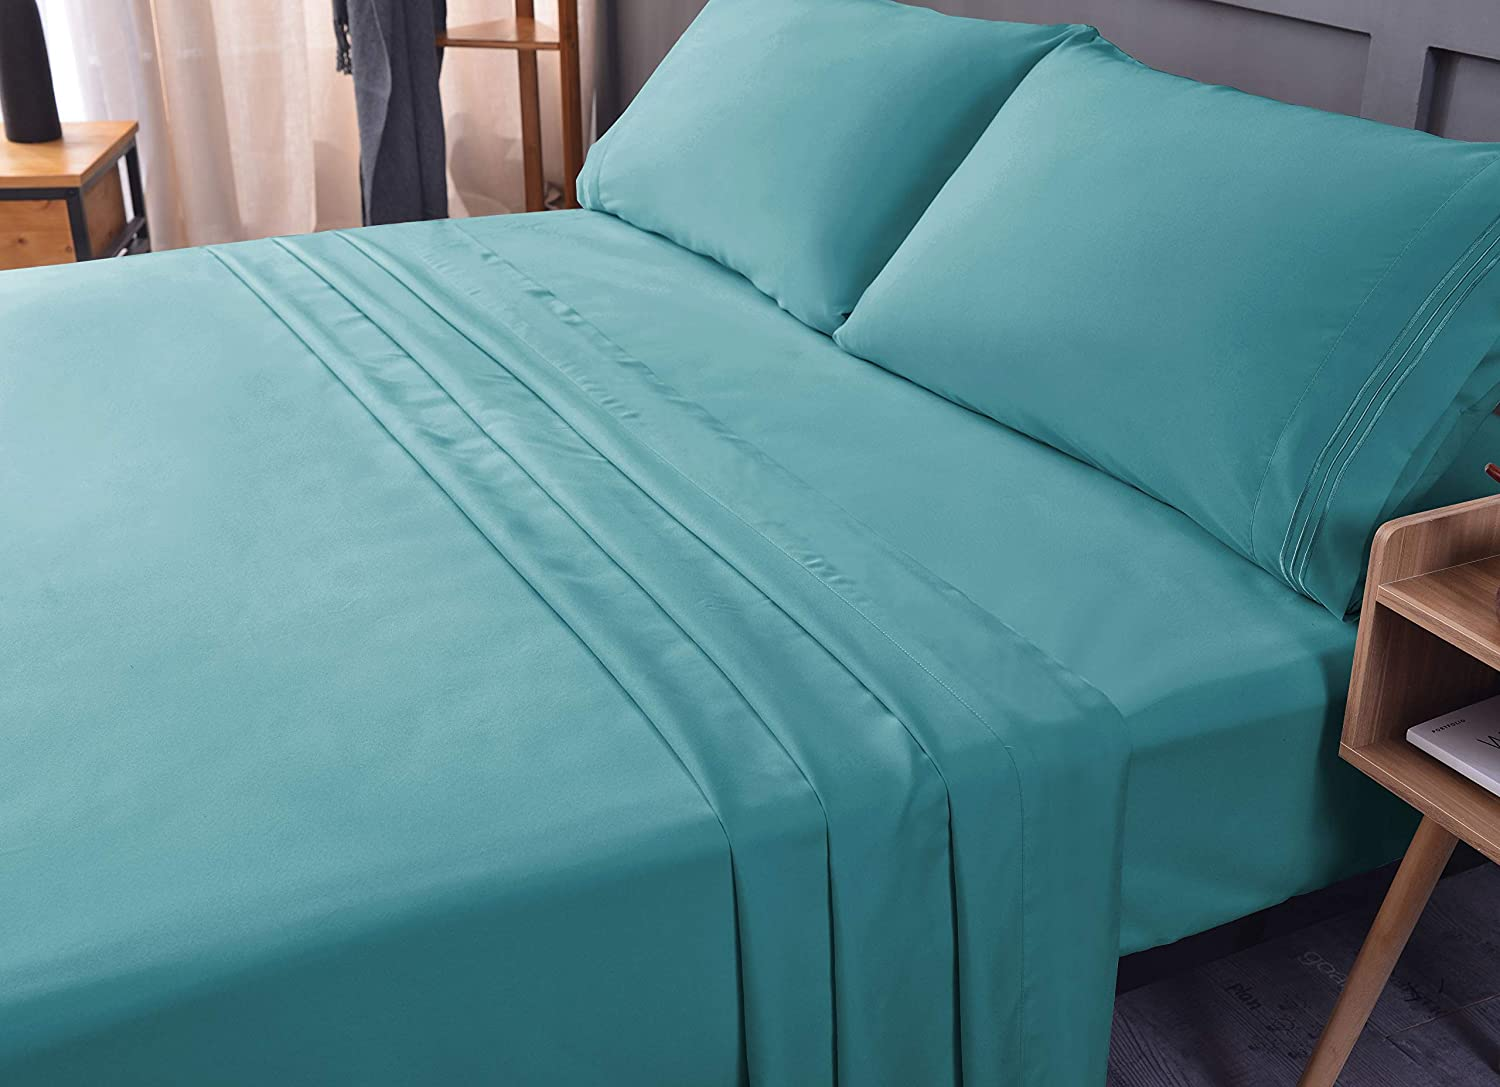 Queen 4PC Bed Sheet Set - Bamboo,Cooling Sheets, Eco-Friendly, Non-allergenic, Fade Resistant, Wrinkle Free, Ultra Soft, Shrink Resistant, Deep Pocket Bedding Sheets - 4 Piece set (Teal, Queen)